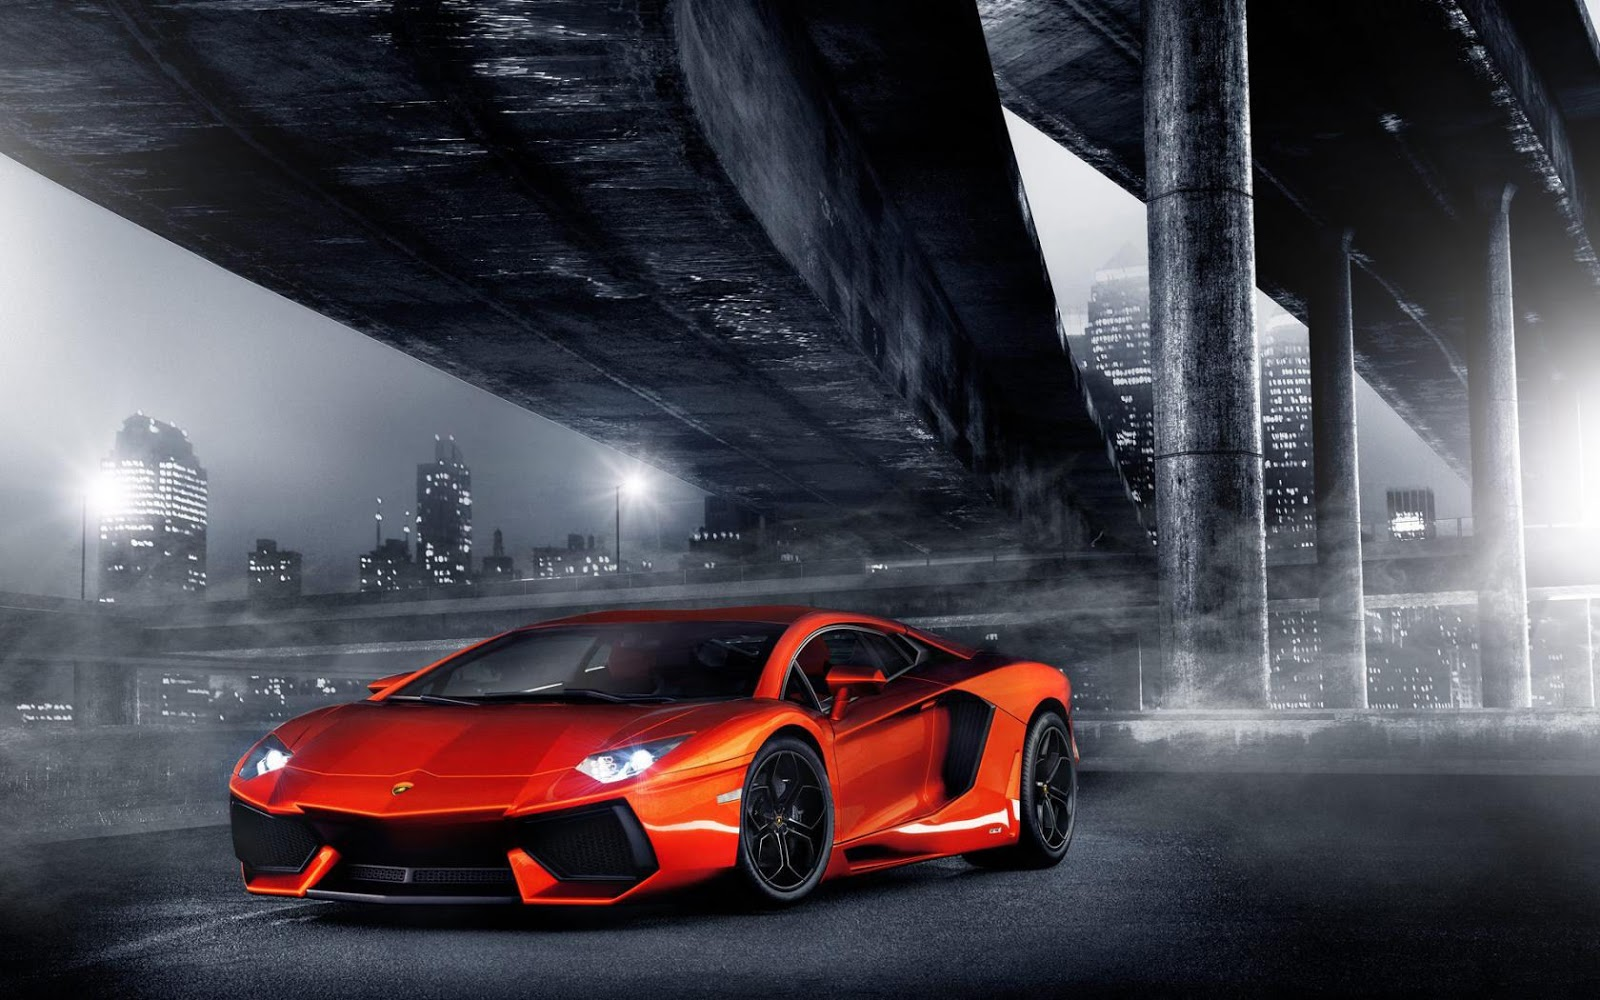 120 lamborghini hd wallpapers most beautiful places in the world download free wallpapers. Black Bedroom Furniture Sets. Home Design Ideas